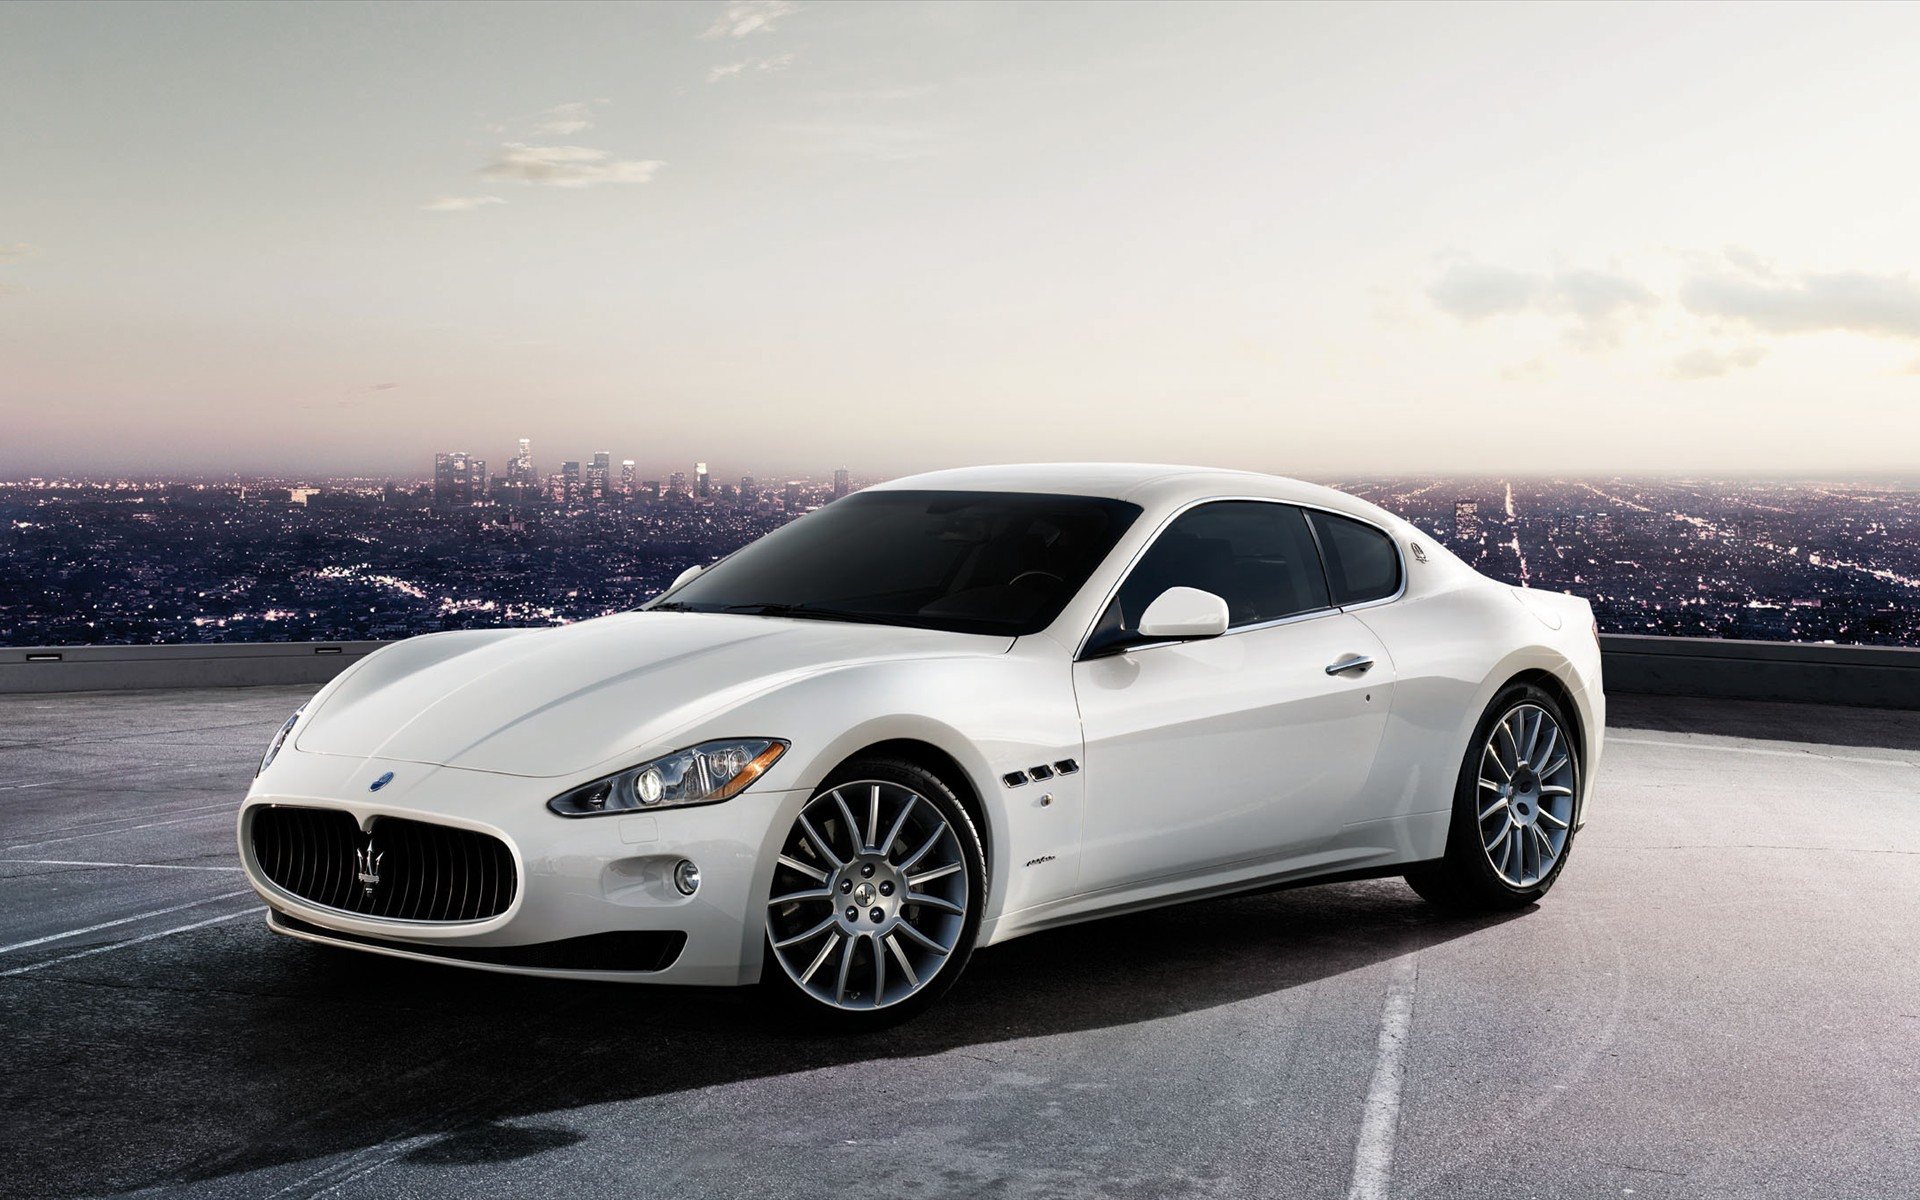 White Maserati Res: 1920x1200 / Size:424kb. Views: 13079